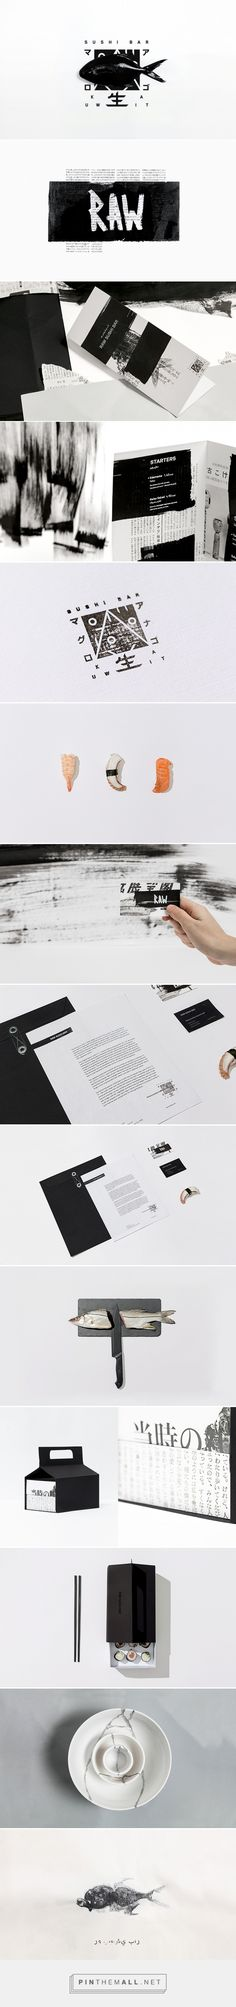 Fivestar Branding Agency – Business Branding and Web Design for Small Business Owners Graphisches Design, Design Logo, Brand Identity Design, Menu Design, Corporate Design, Graphic Design Typography, Book Design, Print Design, Corporate Identity